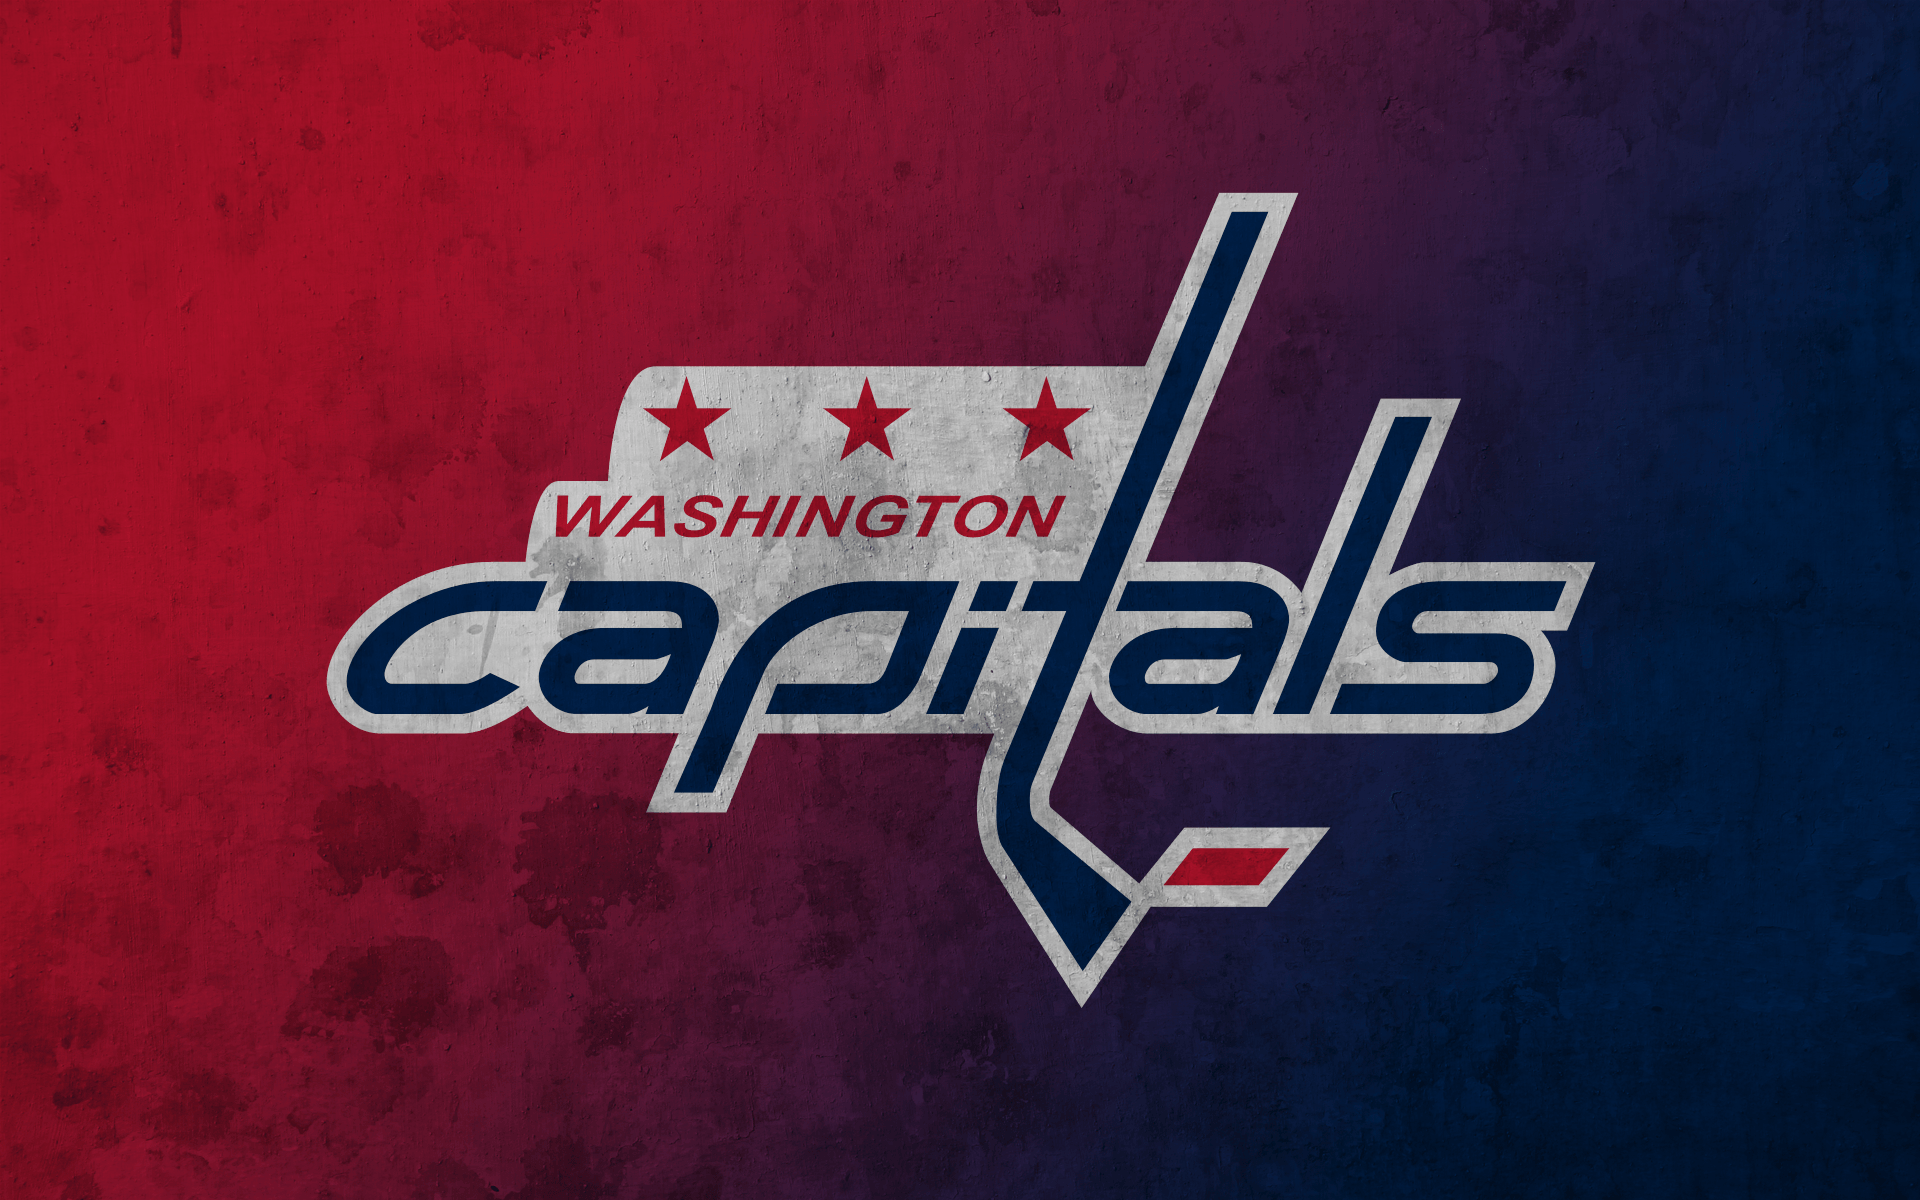 Washington Capitals Wallpapers Group with 53 items